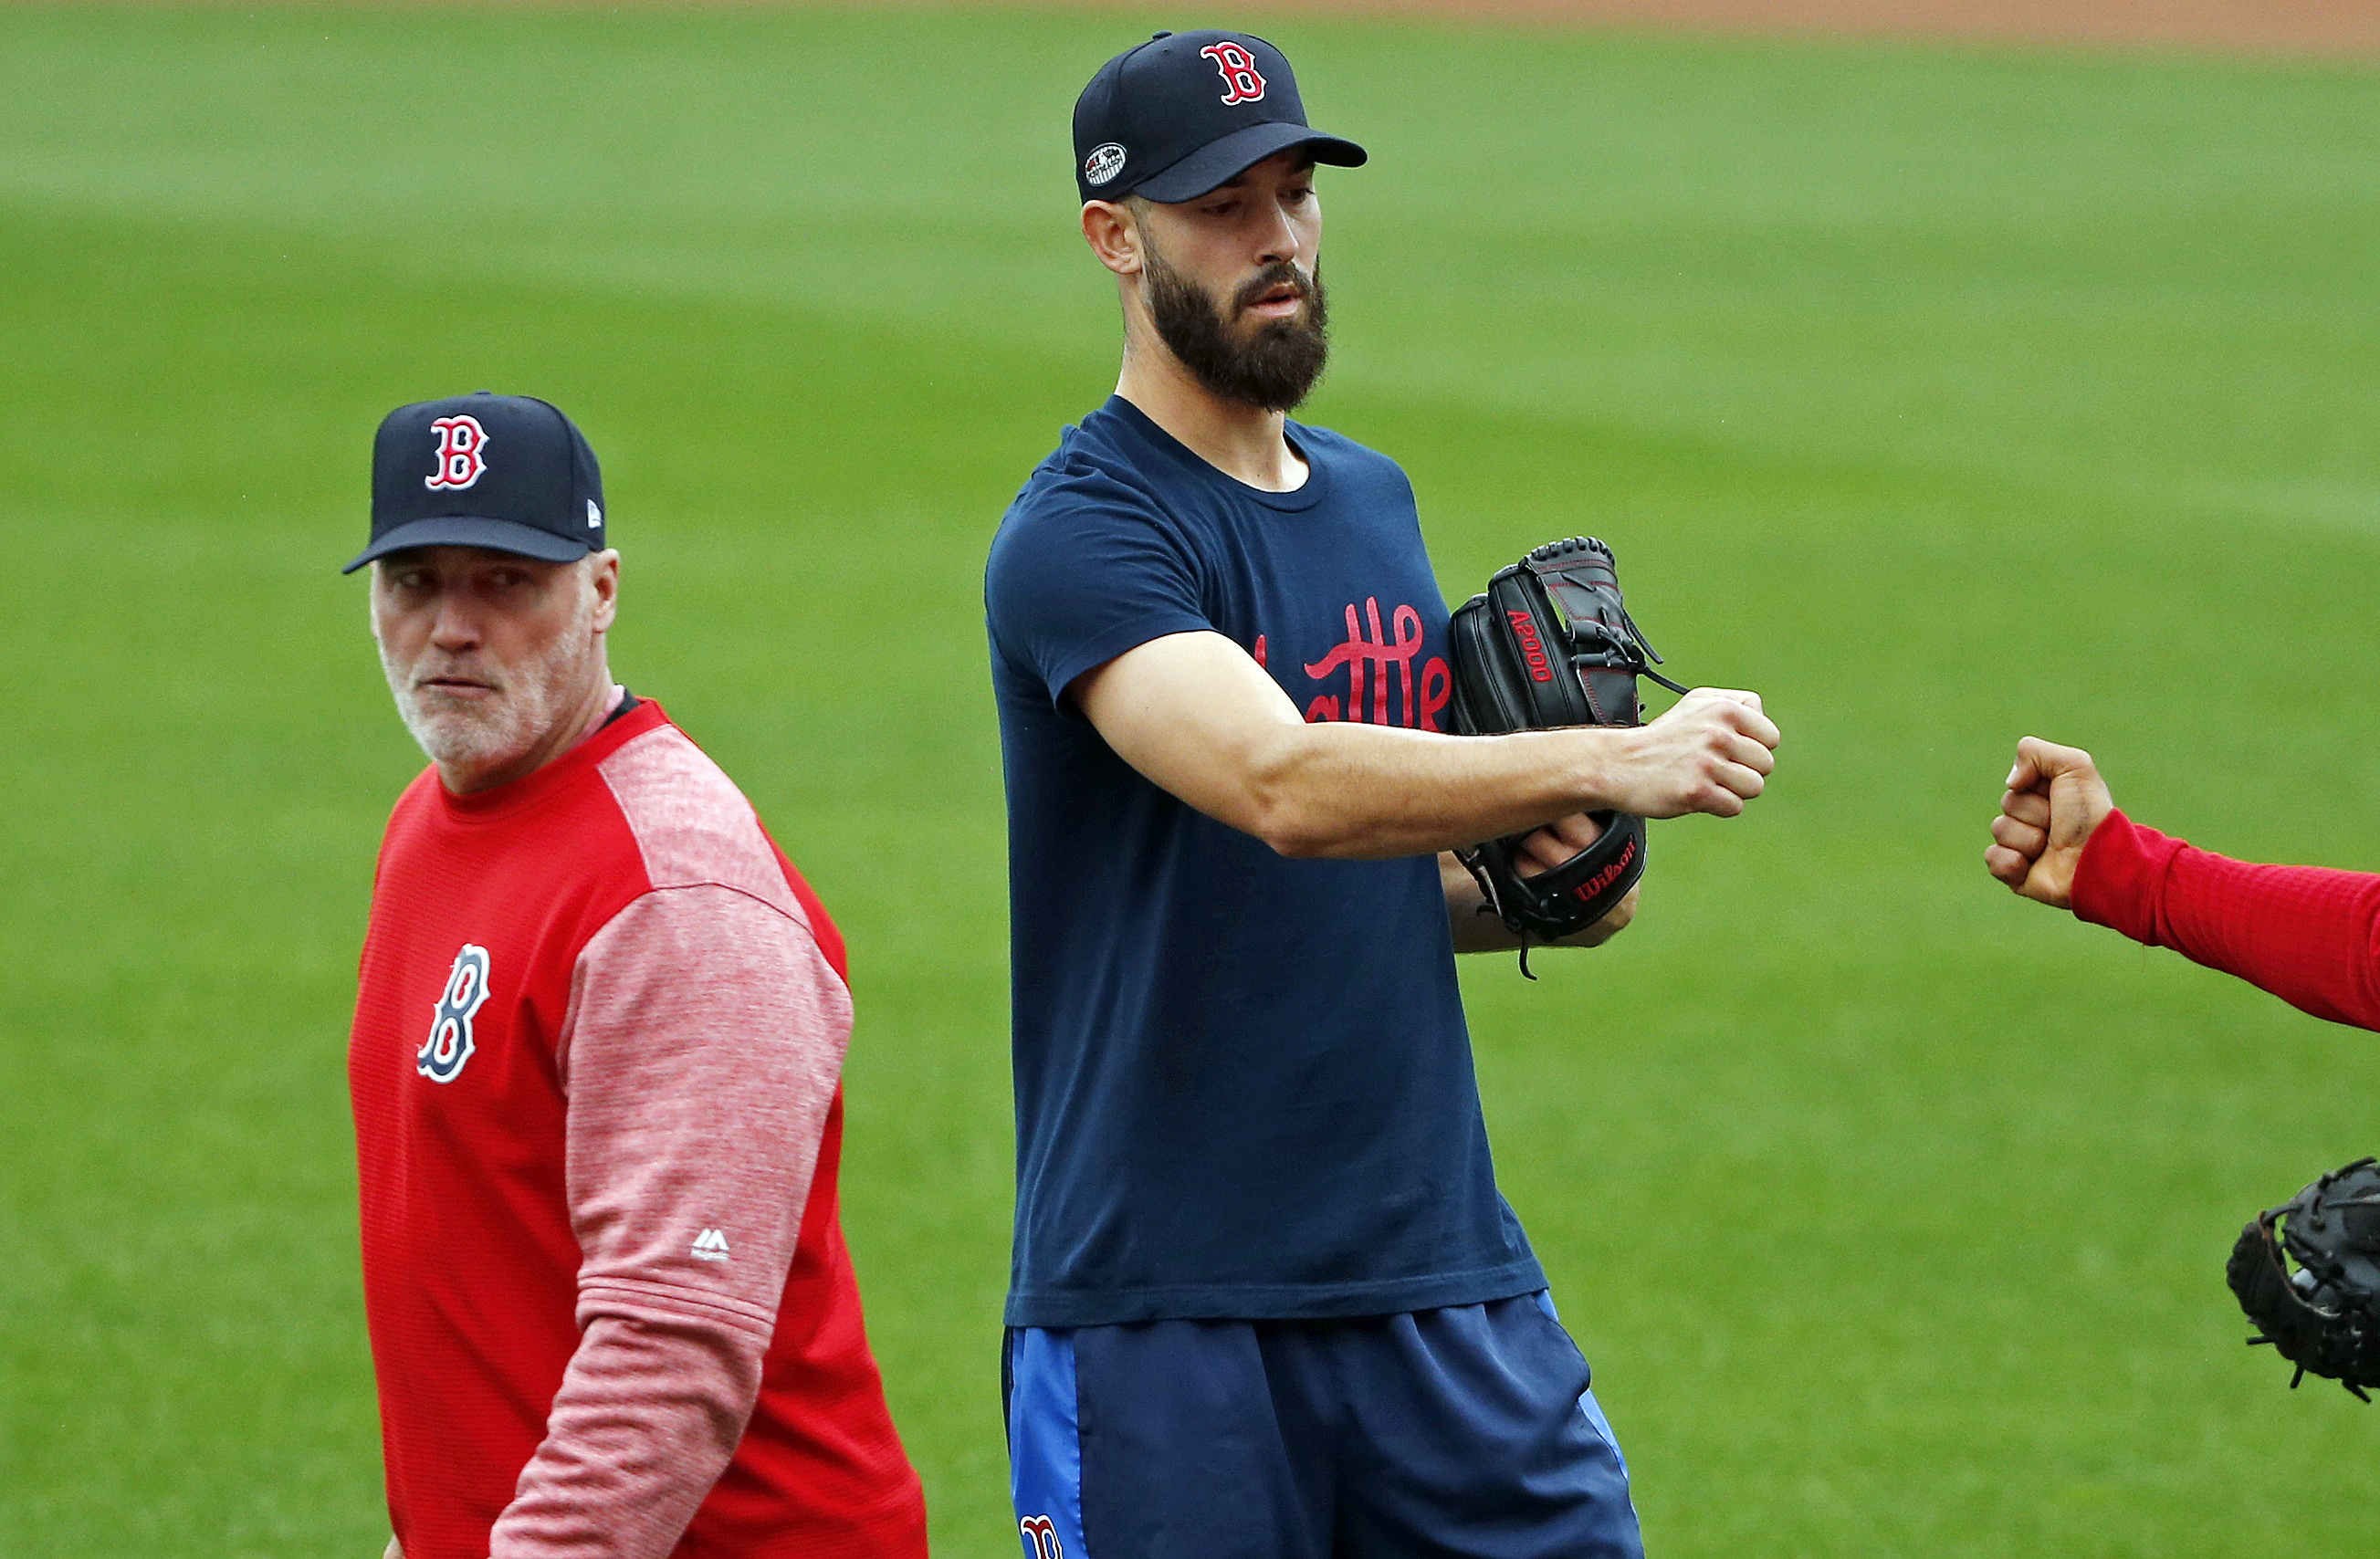 Boston Red Sox's next pitching coach will be tasked with building cohesive culture; team starting wide-ranging search for Dana LeVangie's replacement